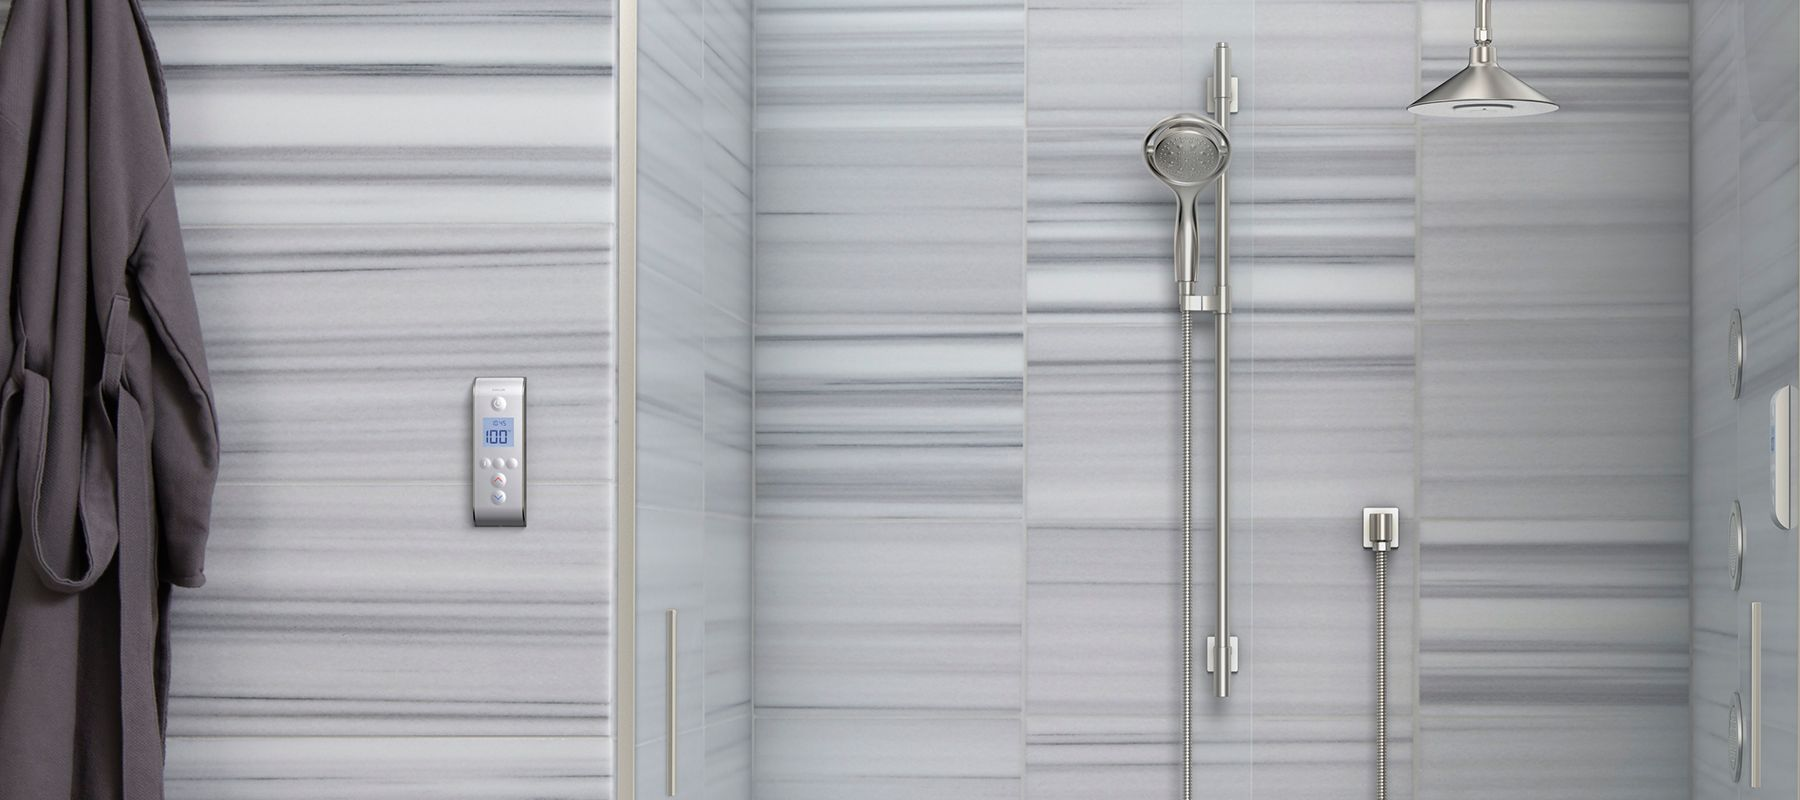 see kohler sprays in action